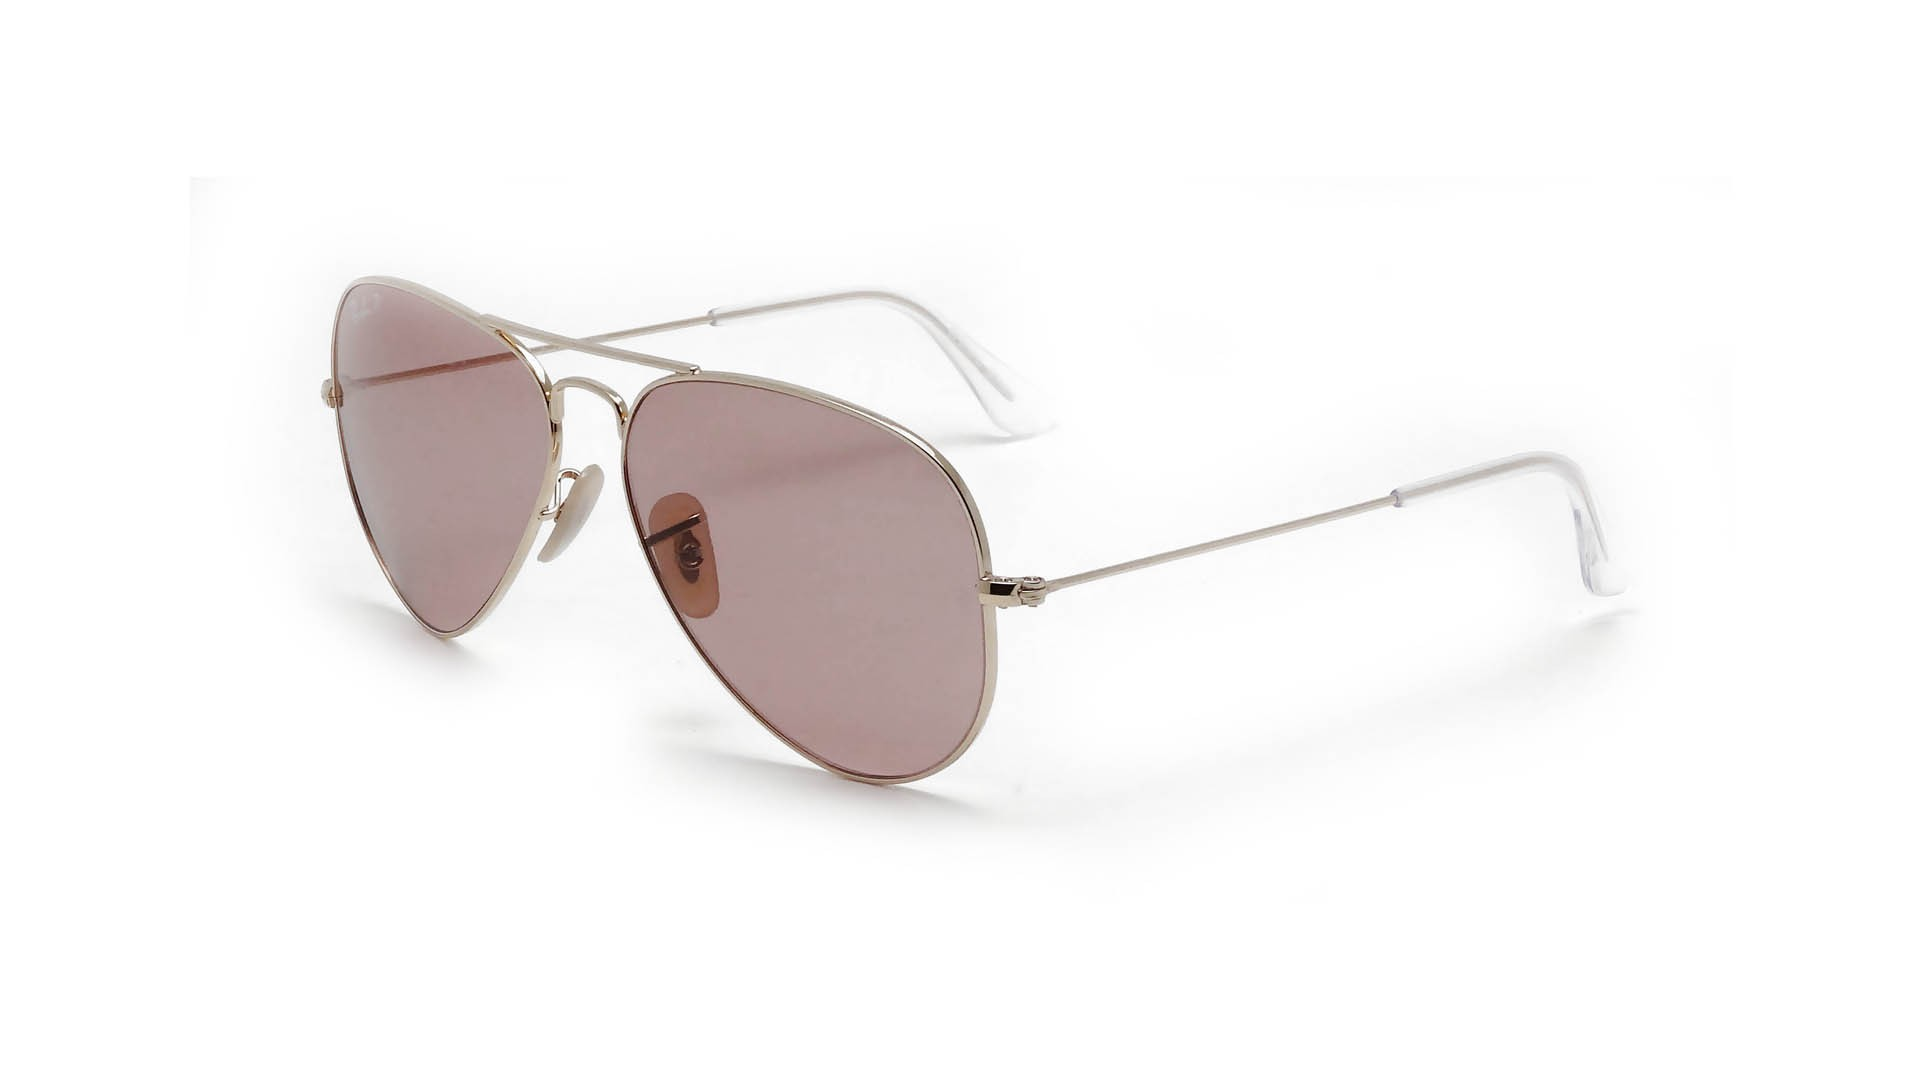 3fd2205c53 Rb3025 Aviator Large Metal Polarized 001 58